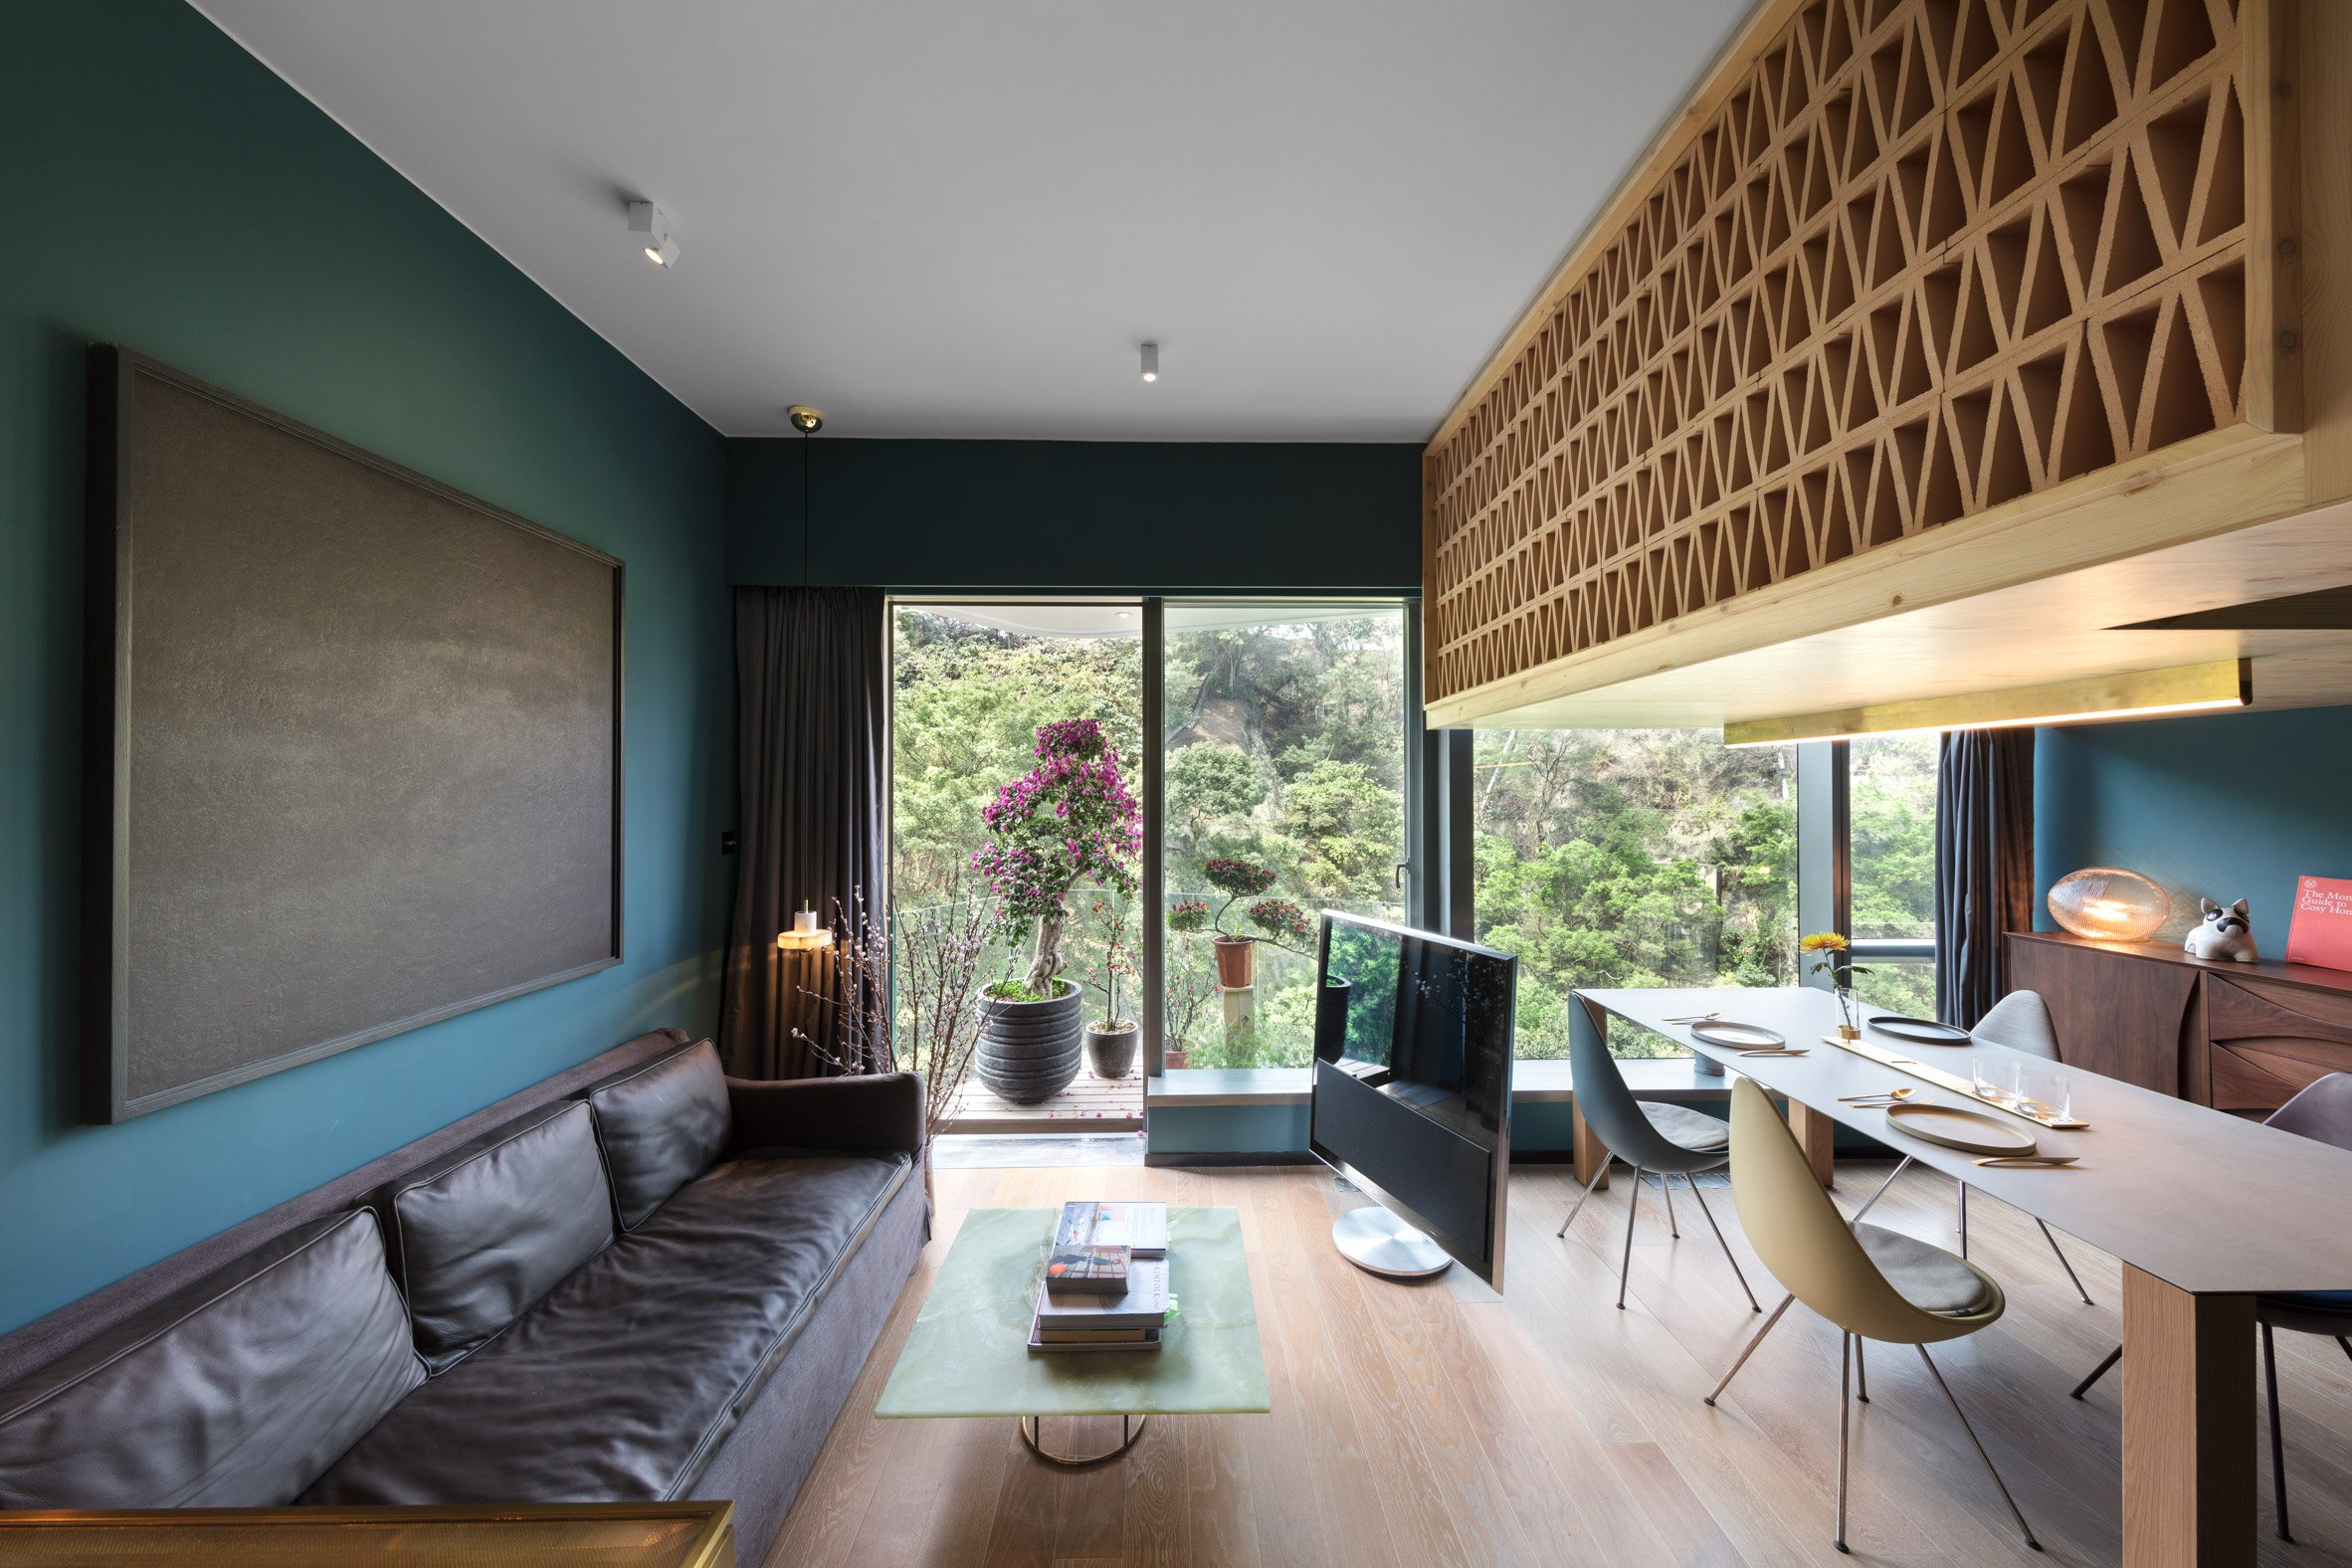 366-square-foot apartment gets space-saving renovation - Curbed